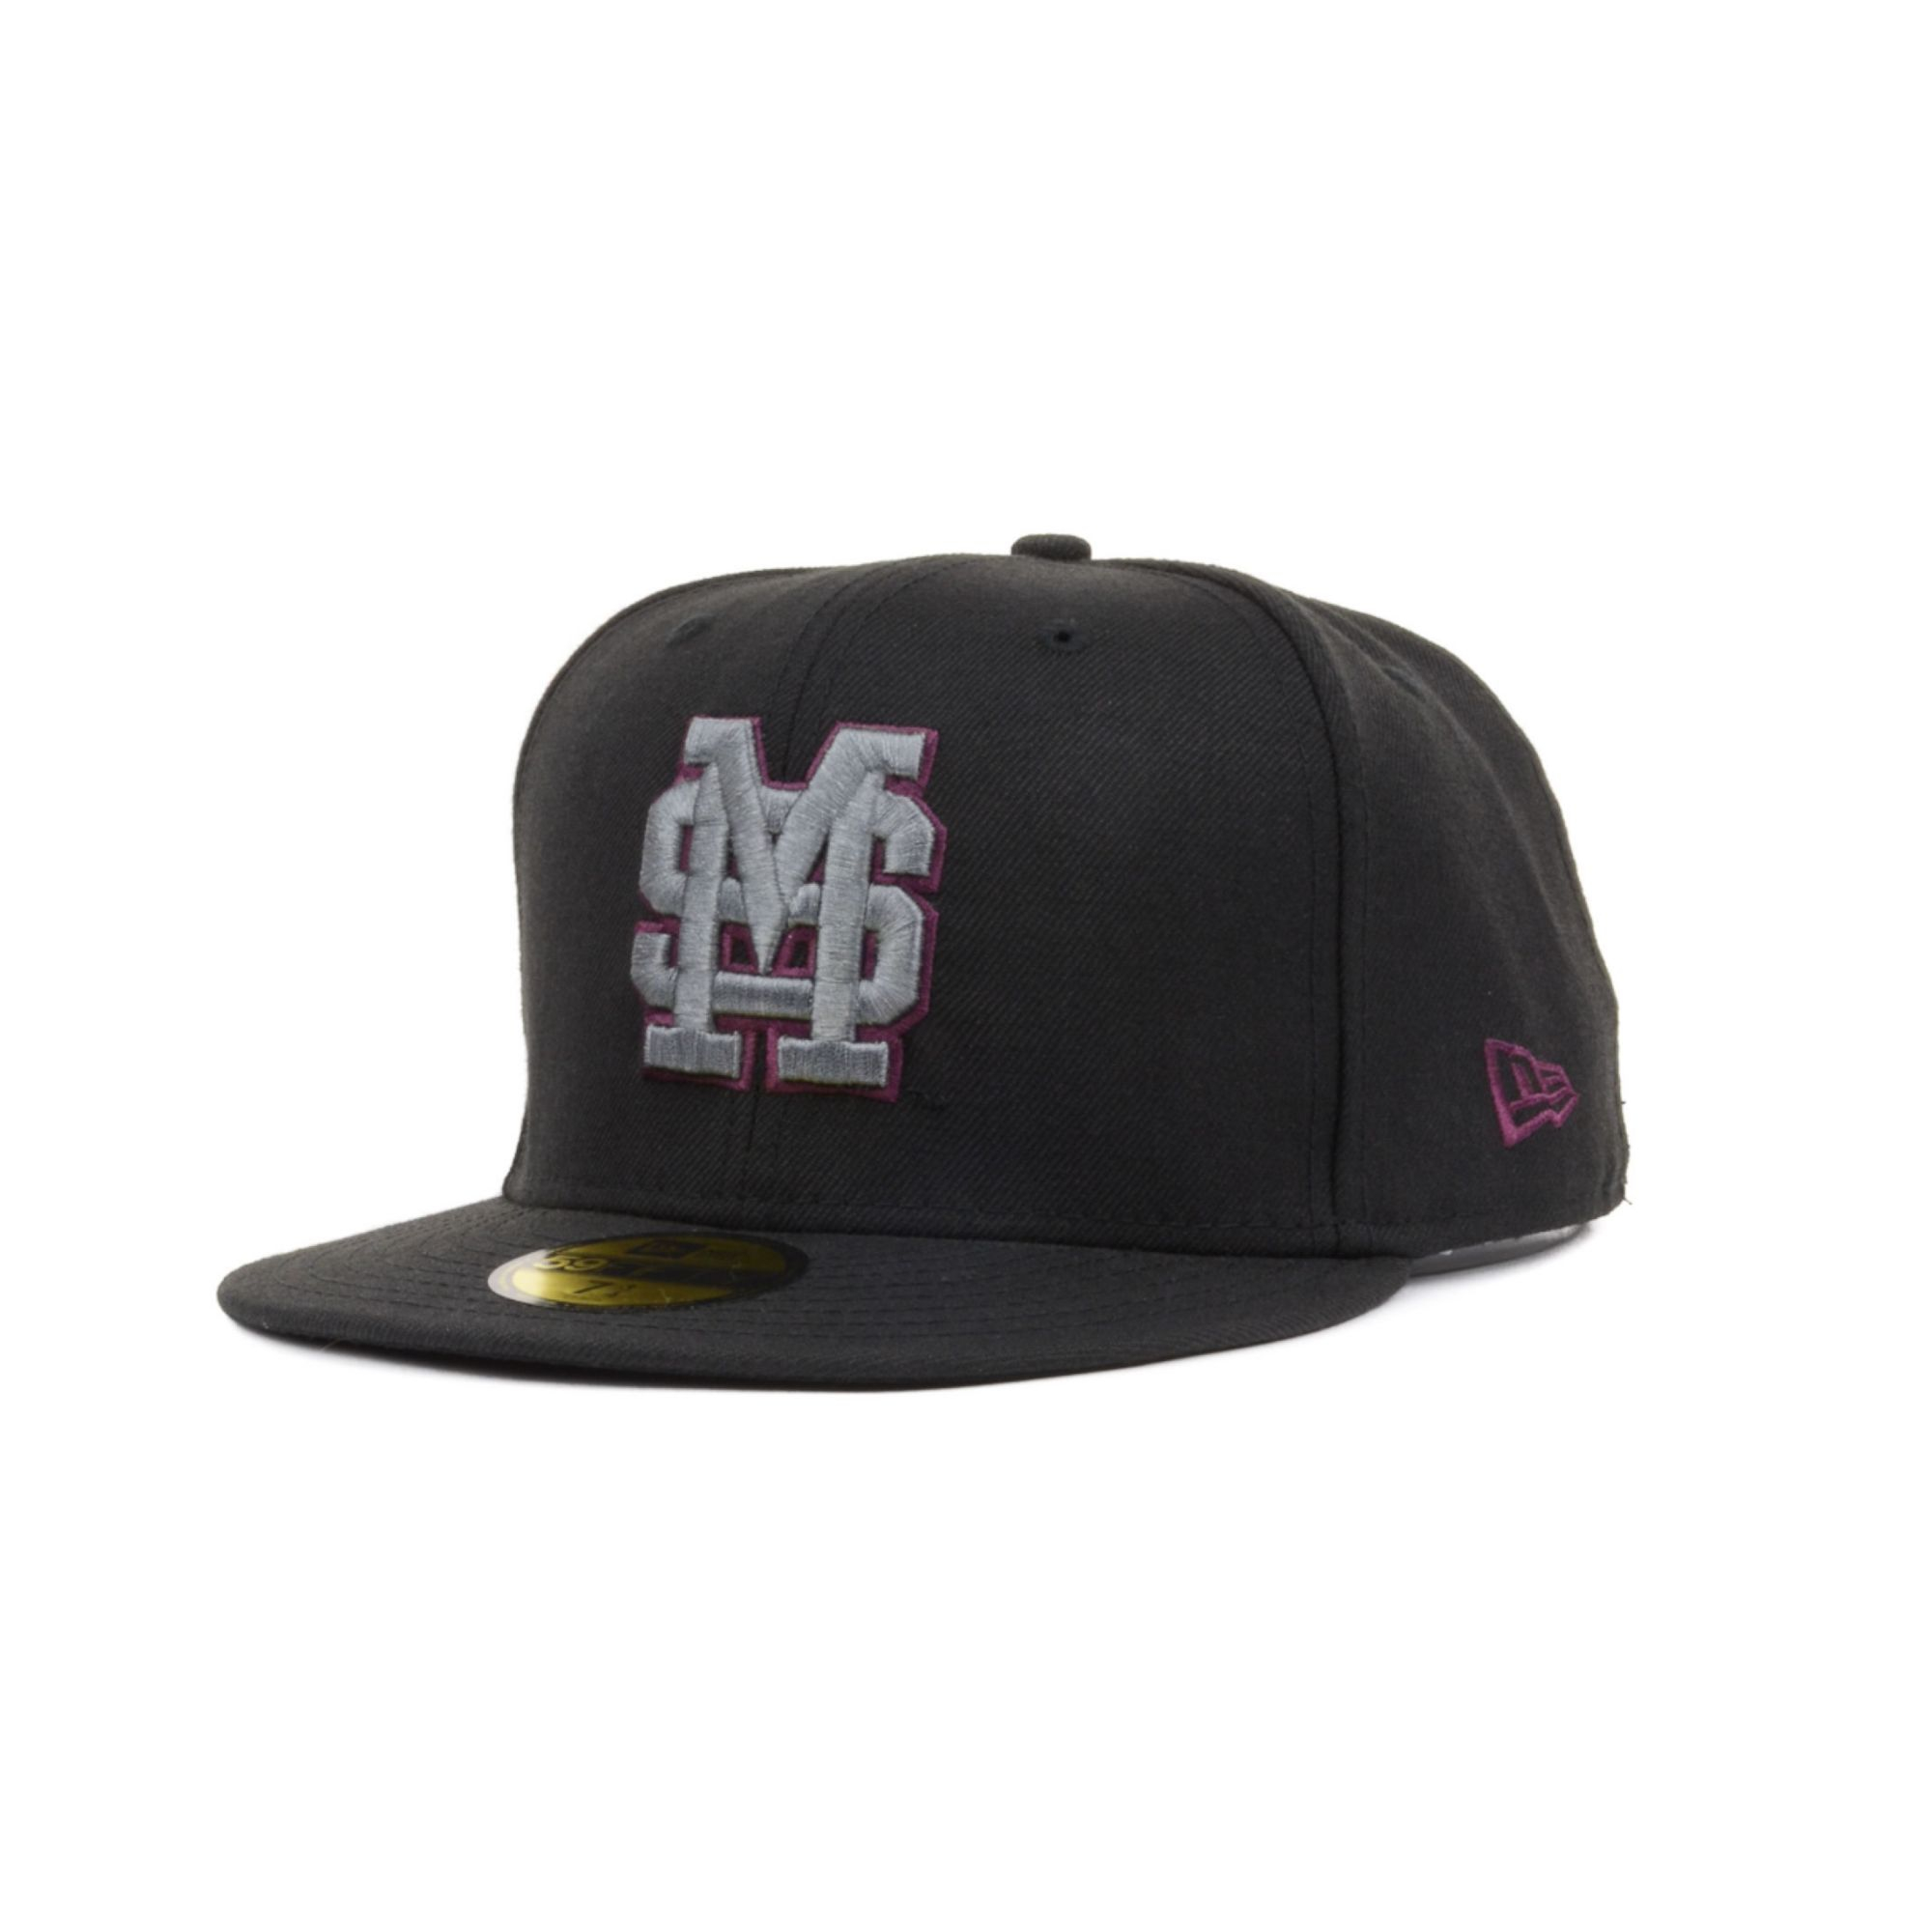 5468ce29945 Lyst - KTZ Mississippi State Bulldogs Bgp 59fifty Cap in Black for Men